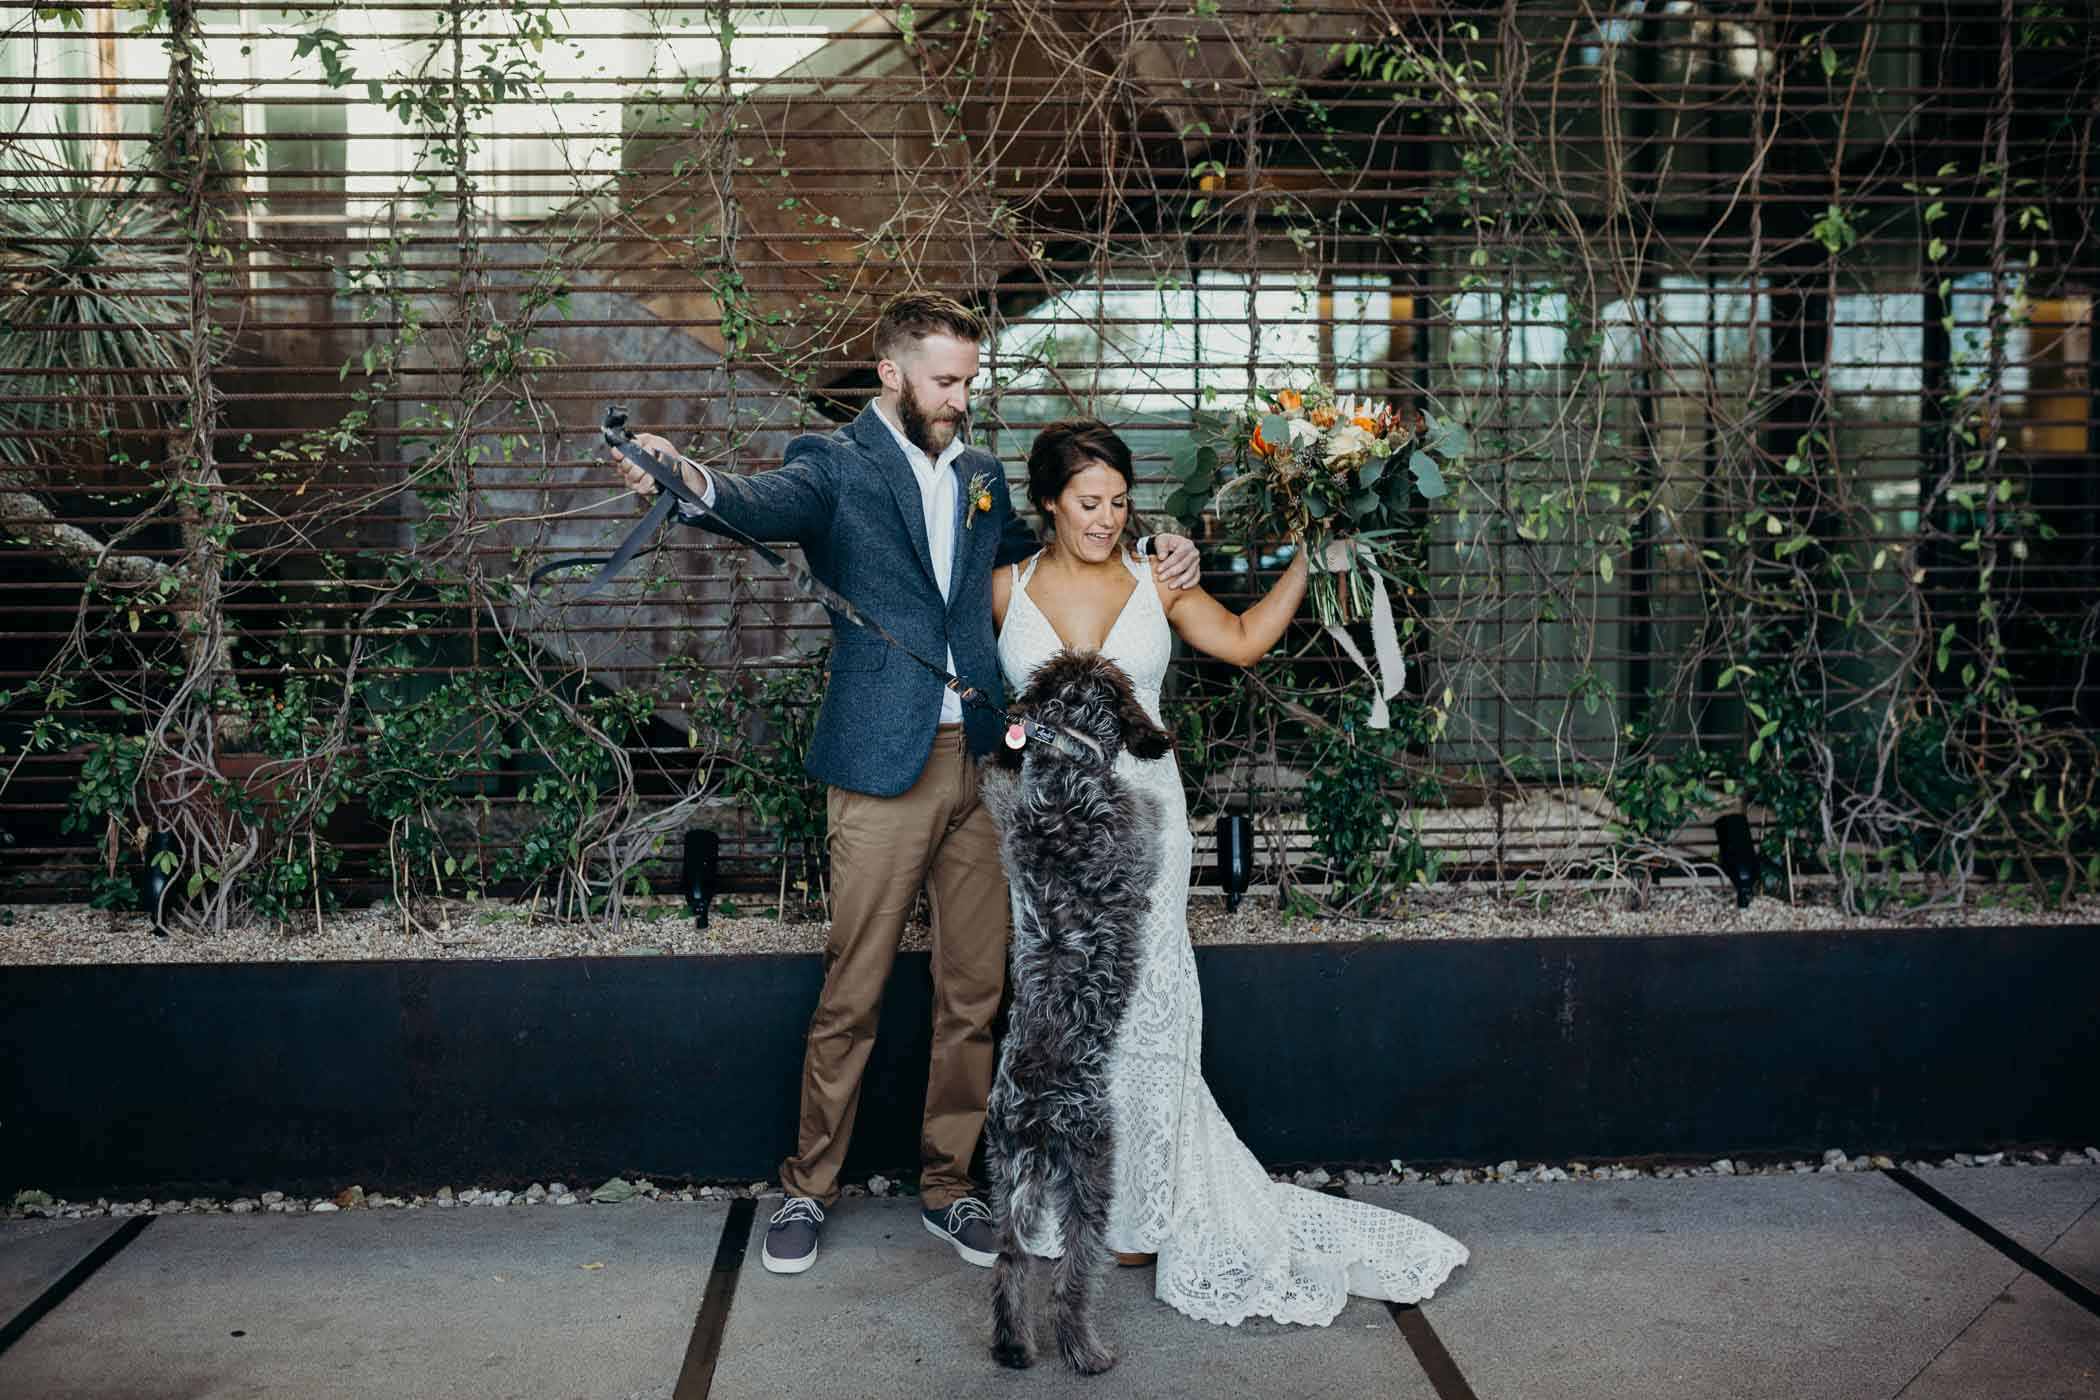 Bride and groom getting ready to take a picture and their dog jumping up at them.